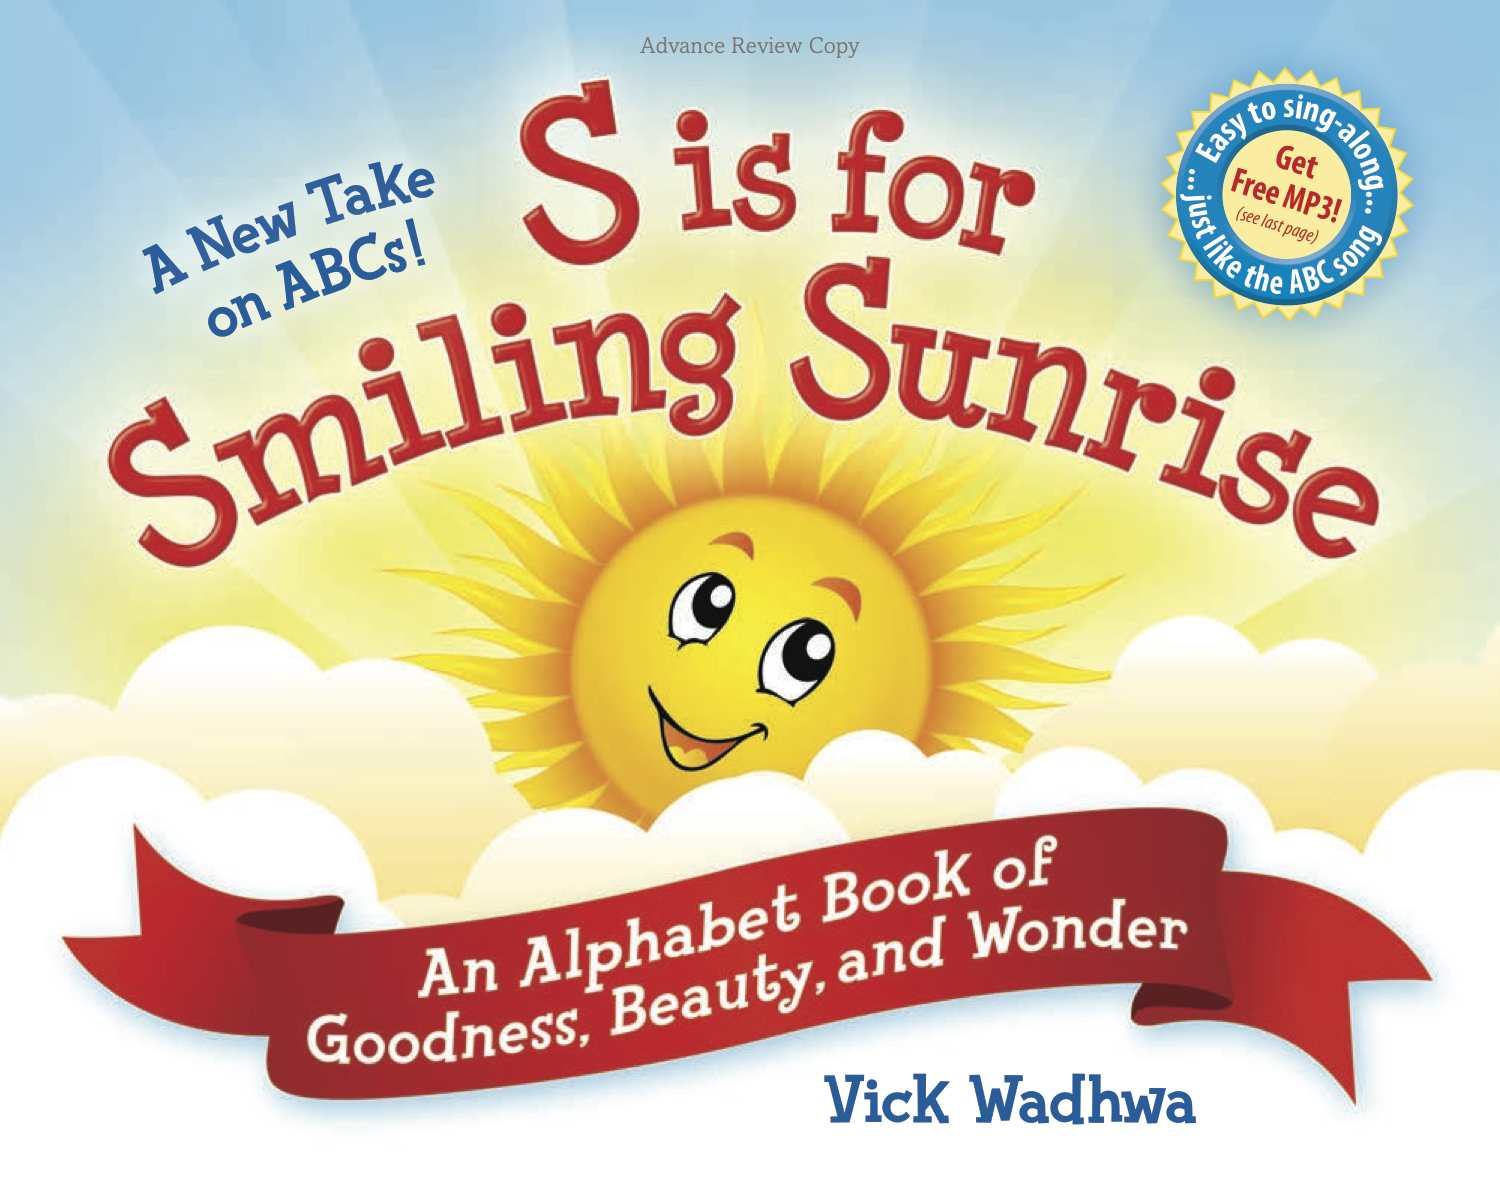 Smiling Sunrise ebook ARC2 - reduced size 100 ppi copy